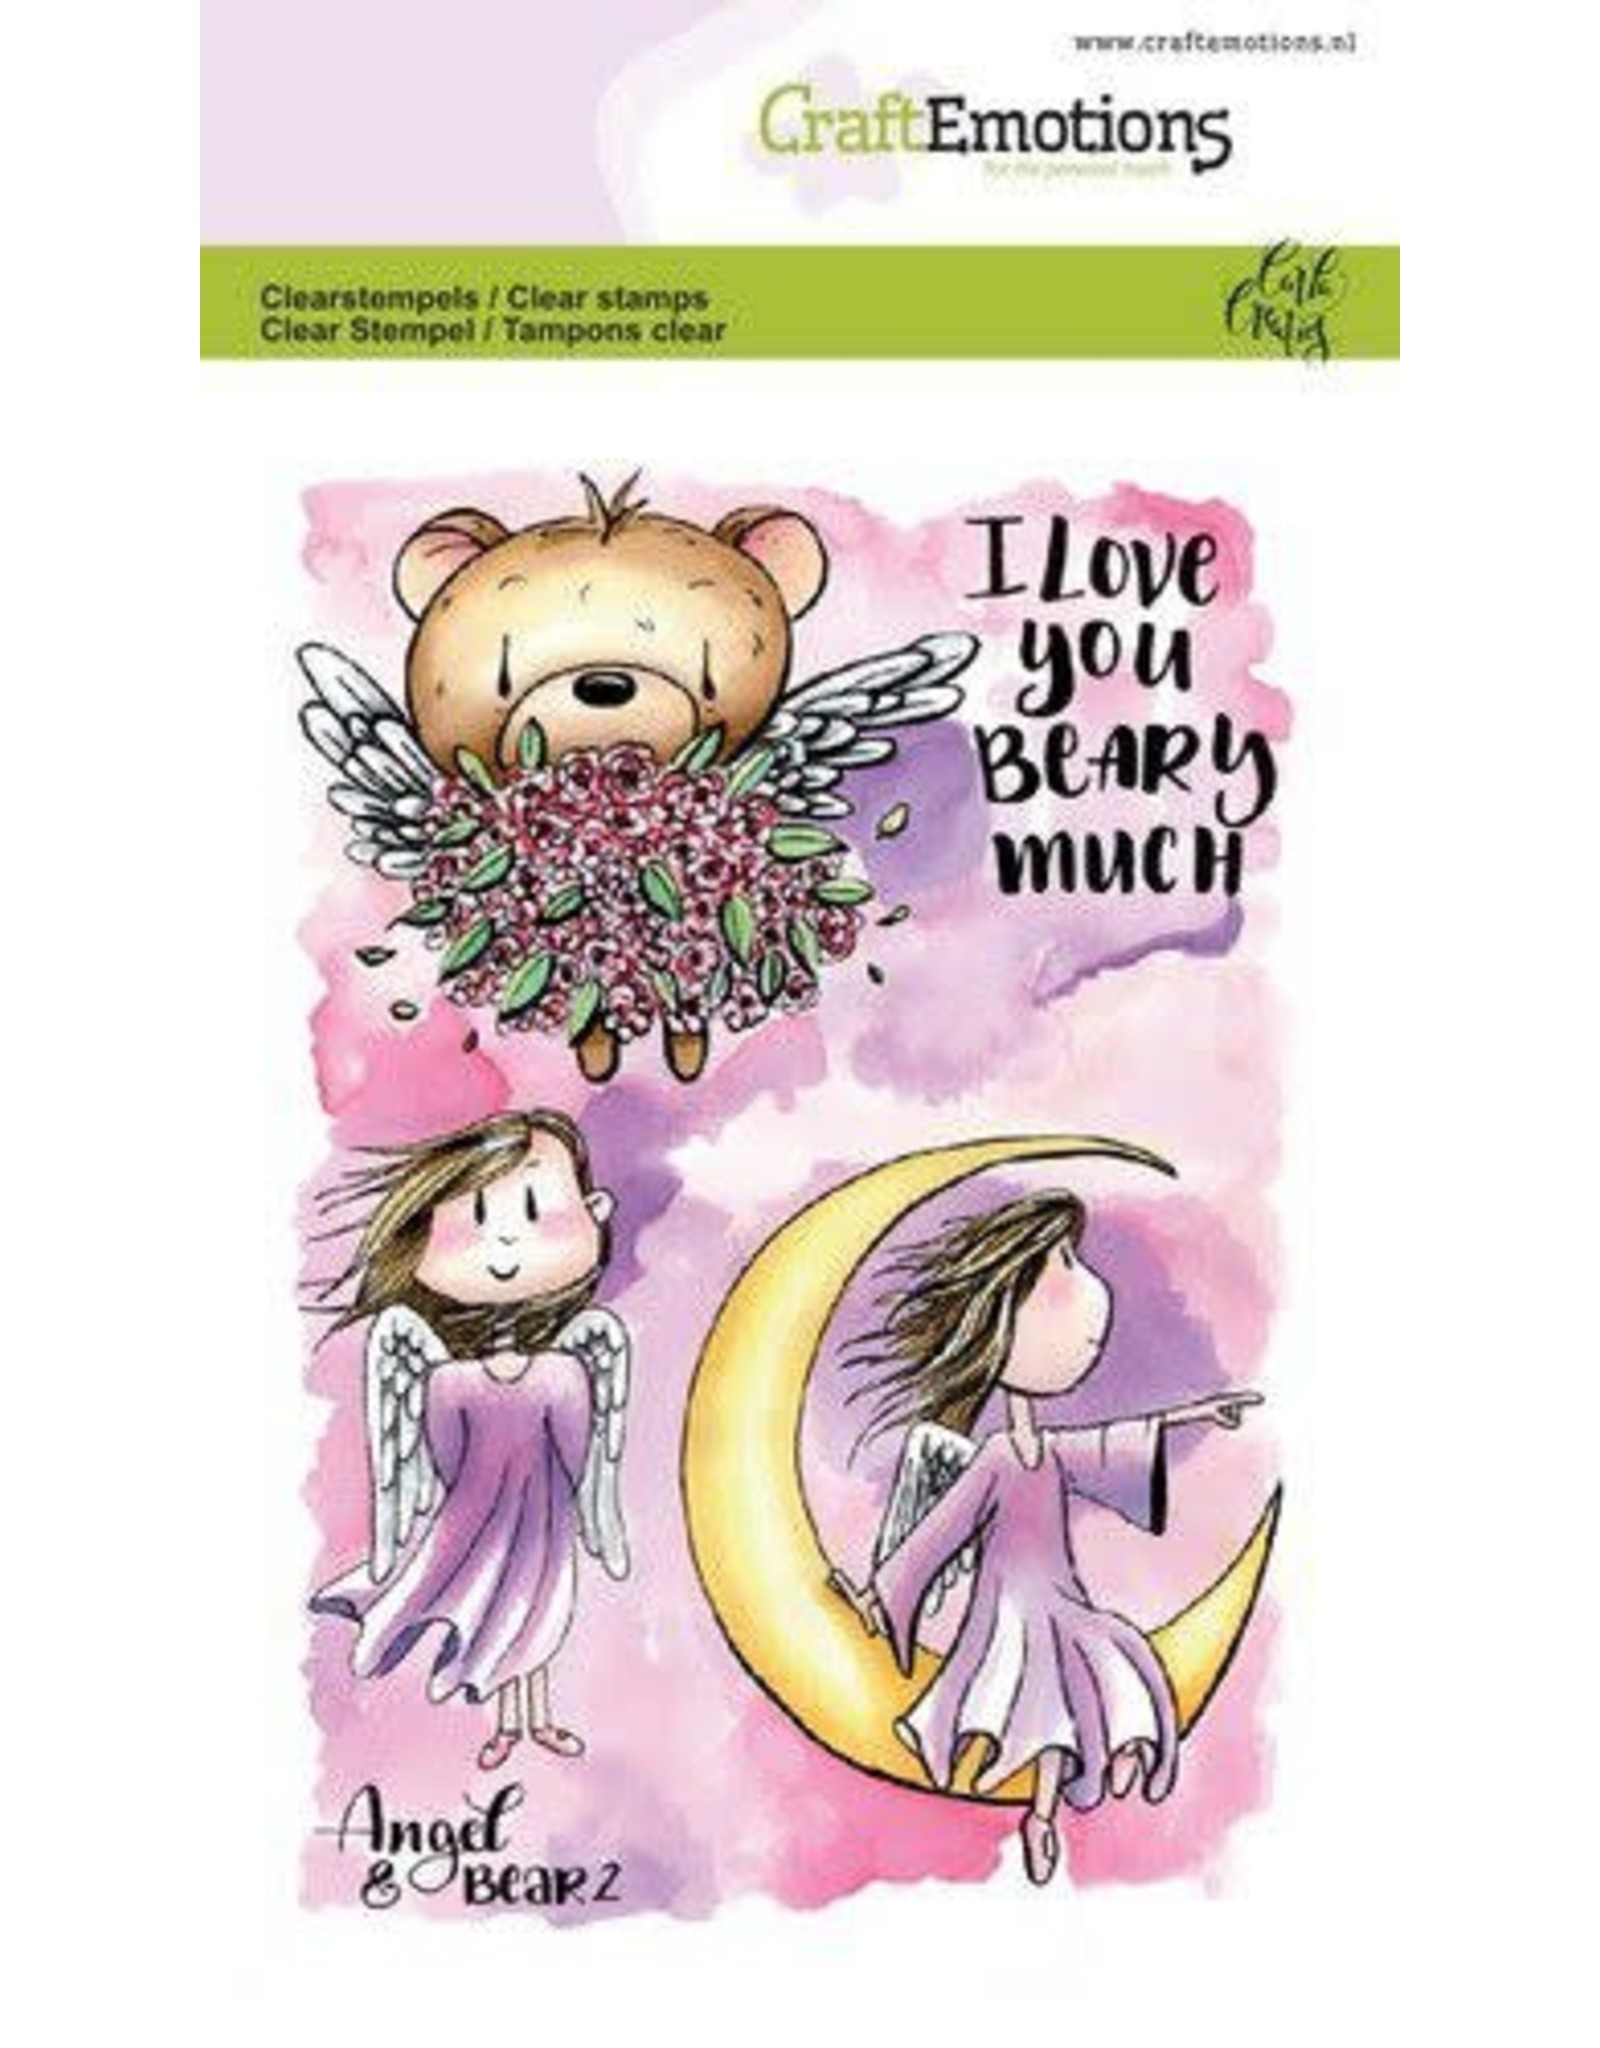 Craft Emotions CraftEmotions clearstamps A6 - Angel & Bear 2 Carla Creaties